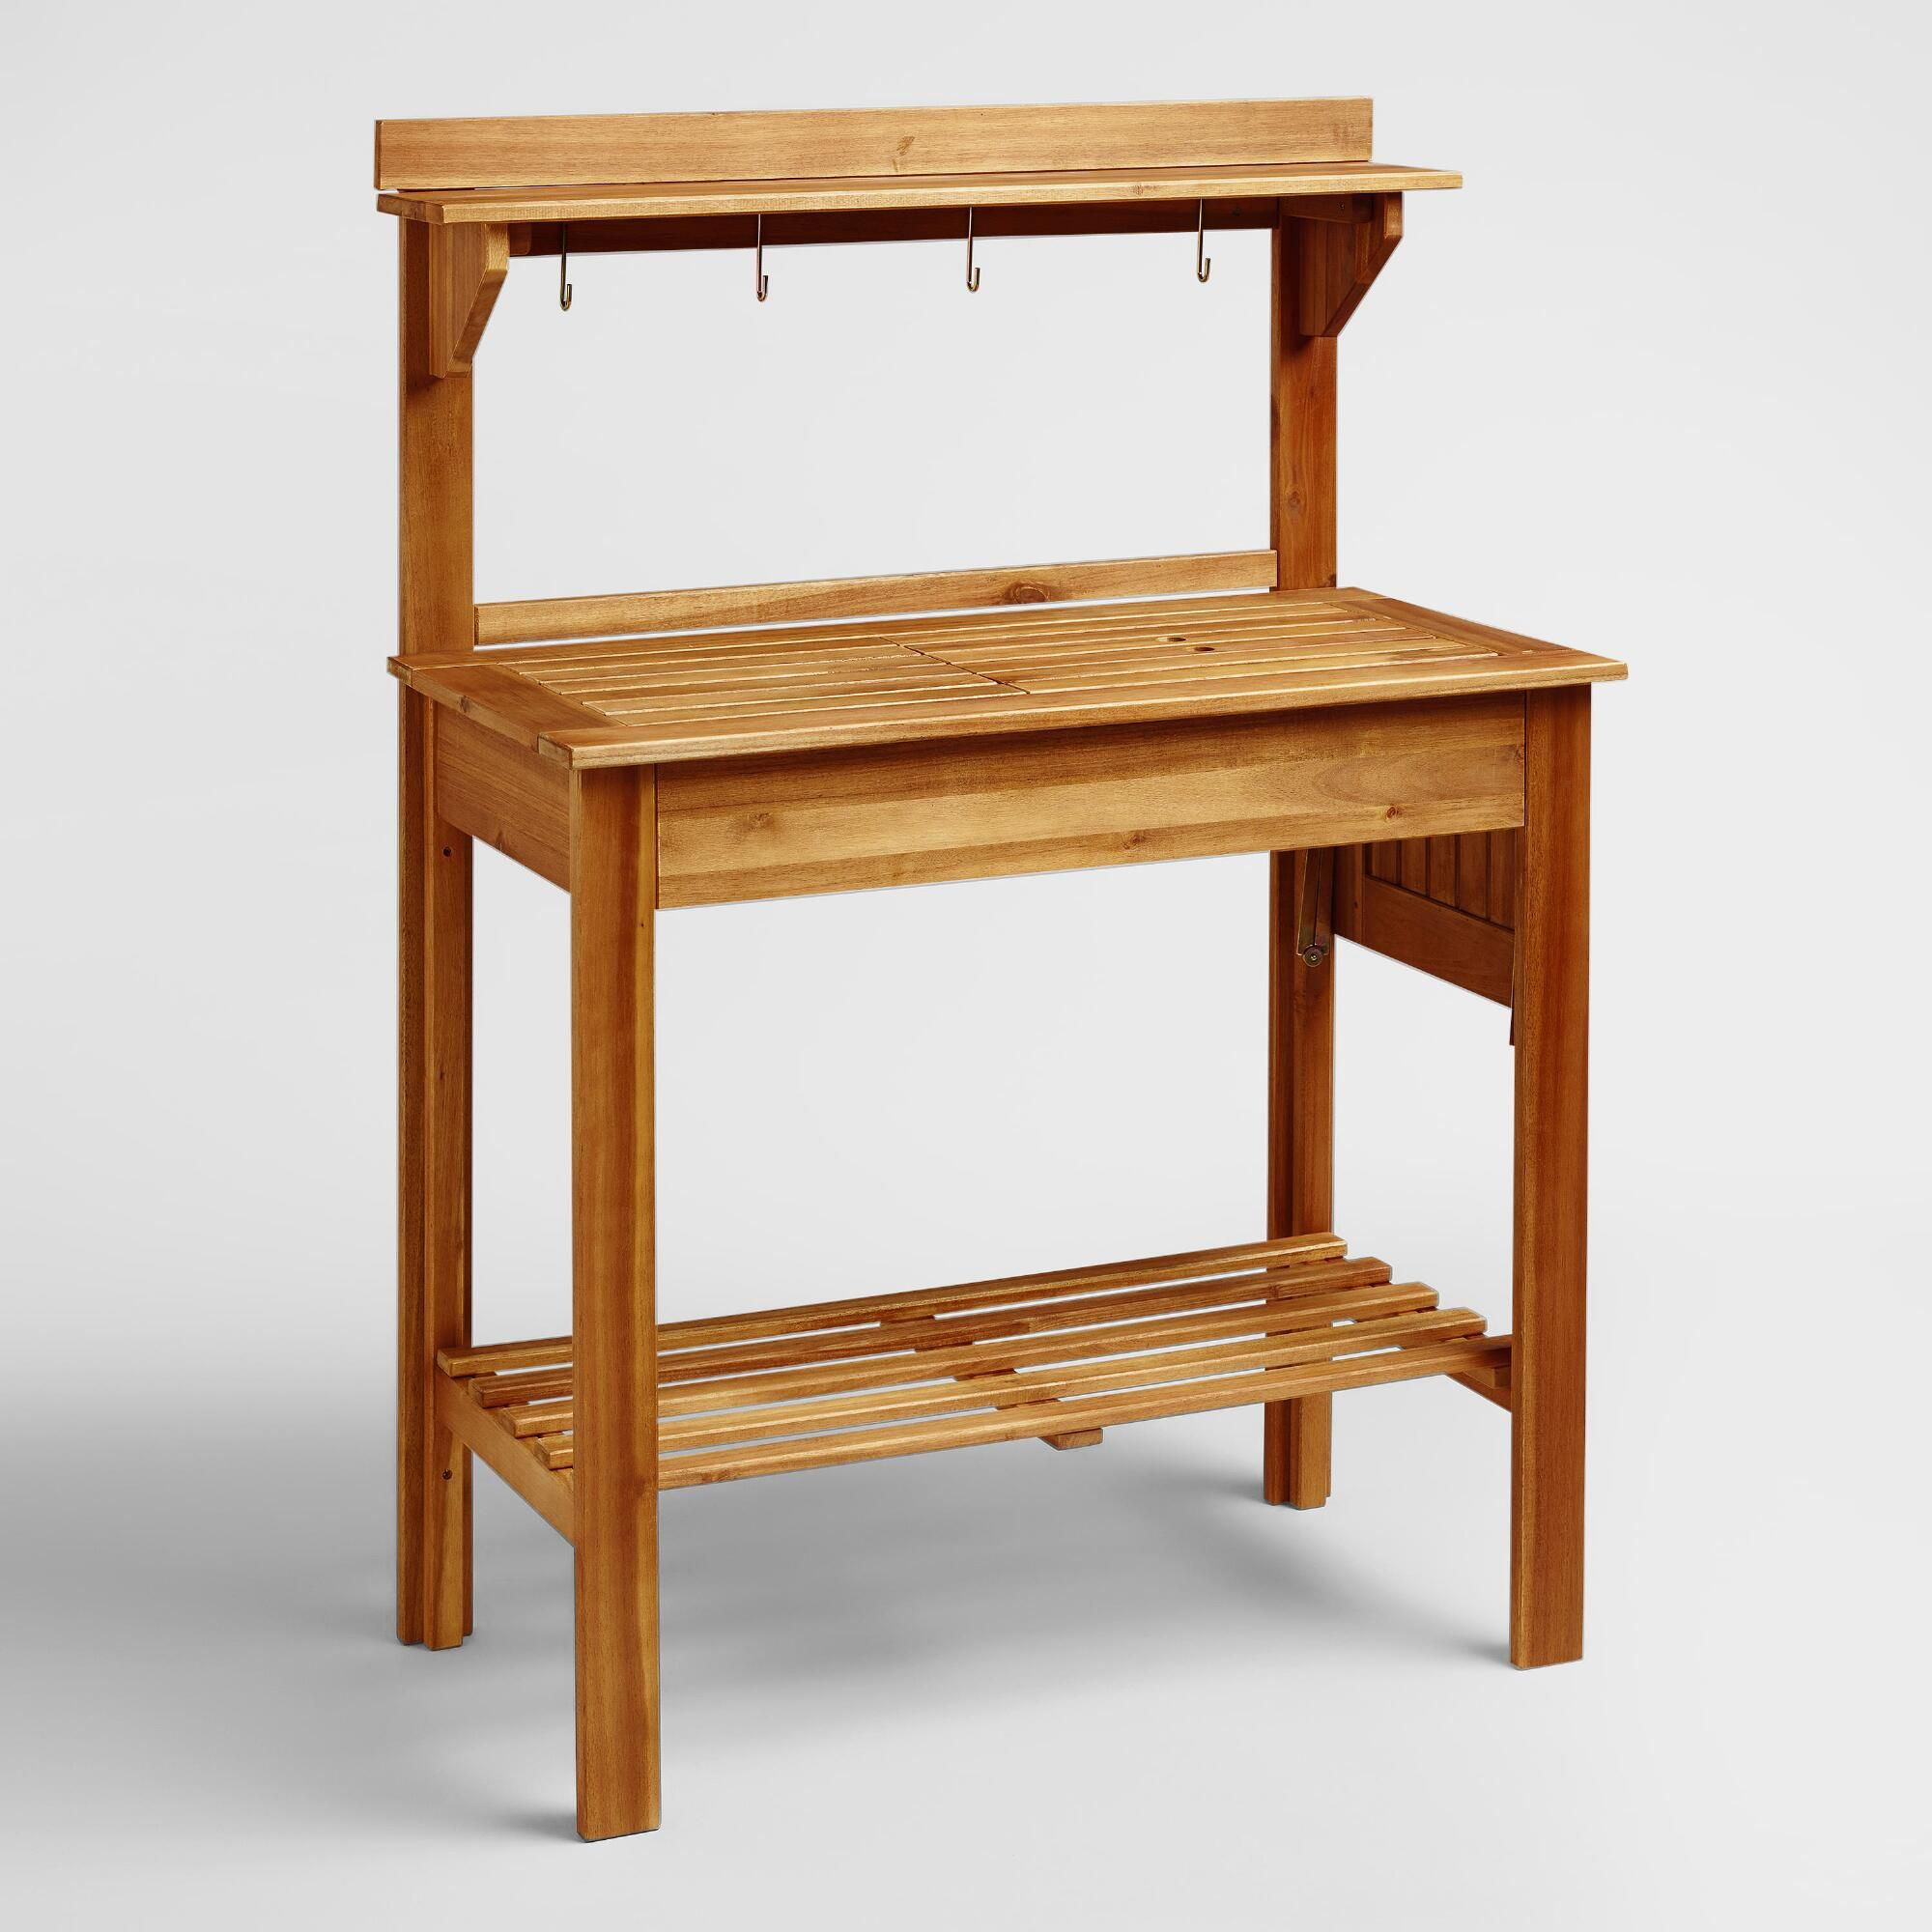 Natural Wood Outdoor Patio Potting Bench By World Market Outdoor Potting Bench Potting Bench Potting Table